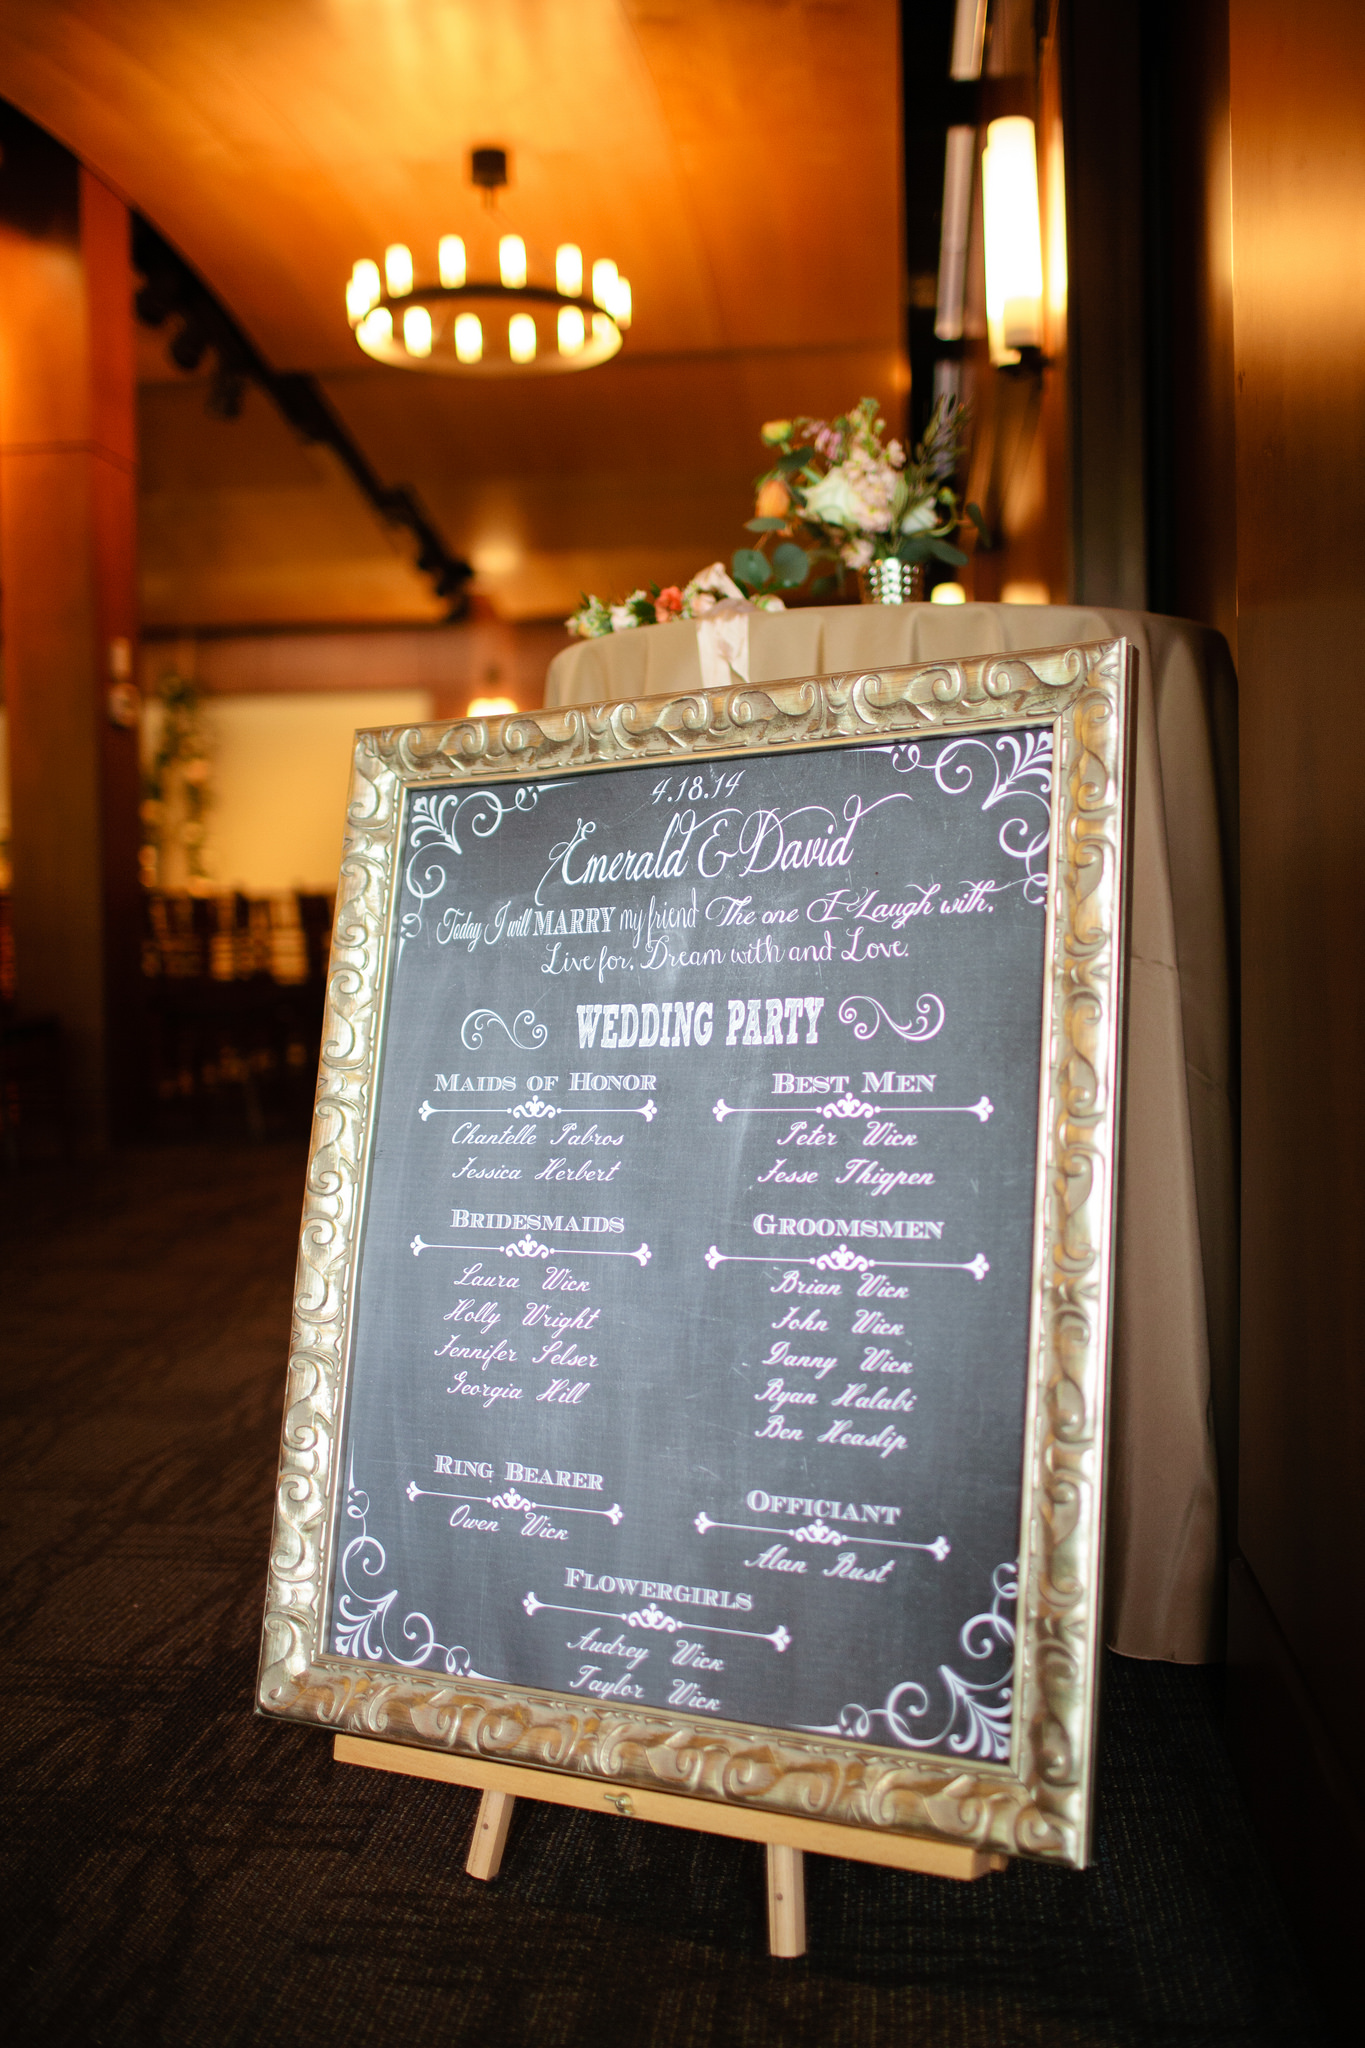 the chalkboard program designed by the bride was killer!